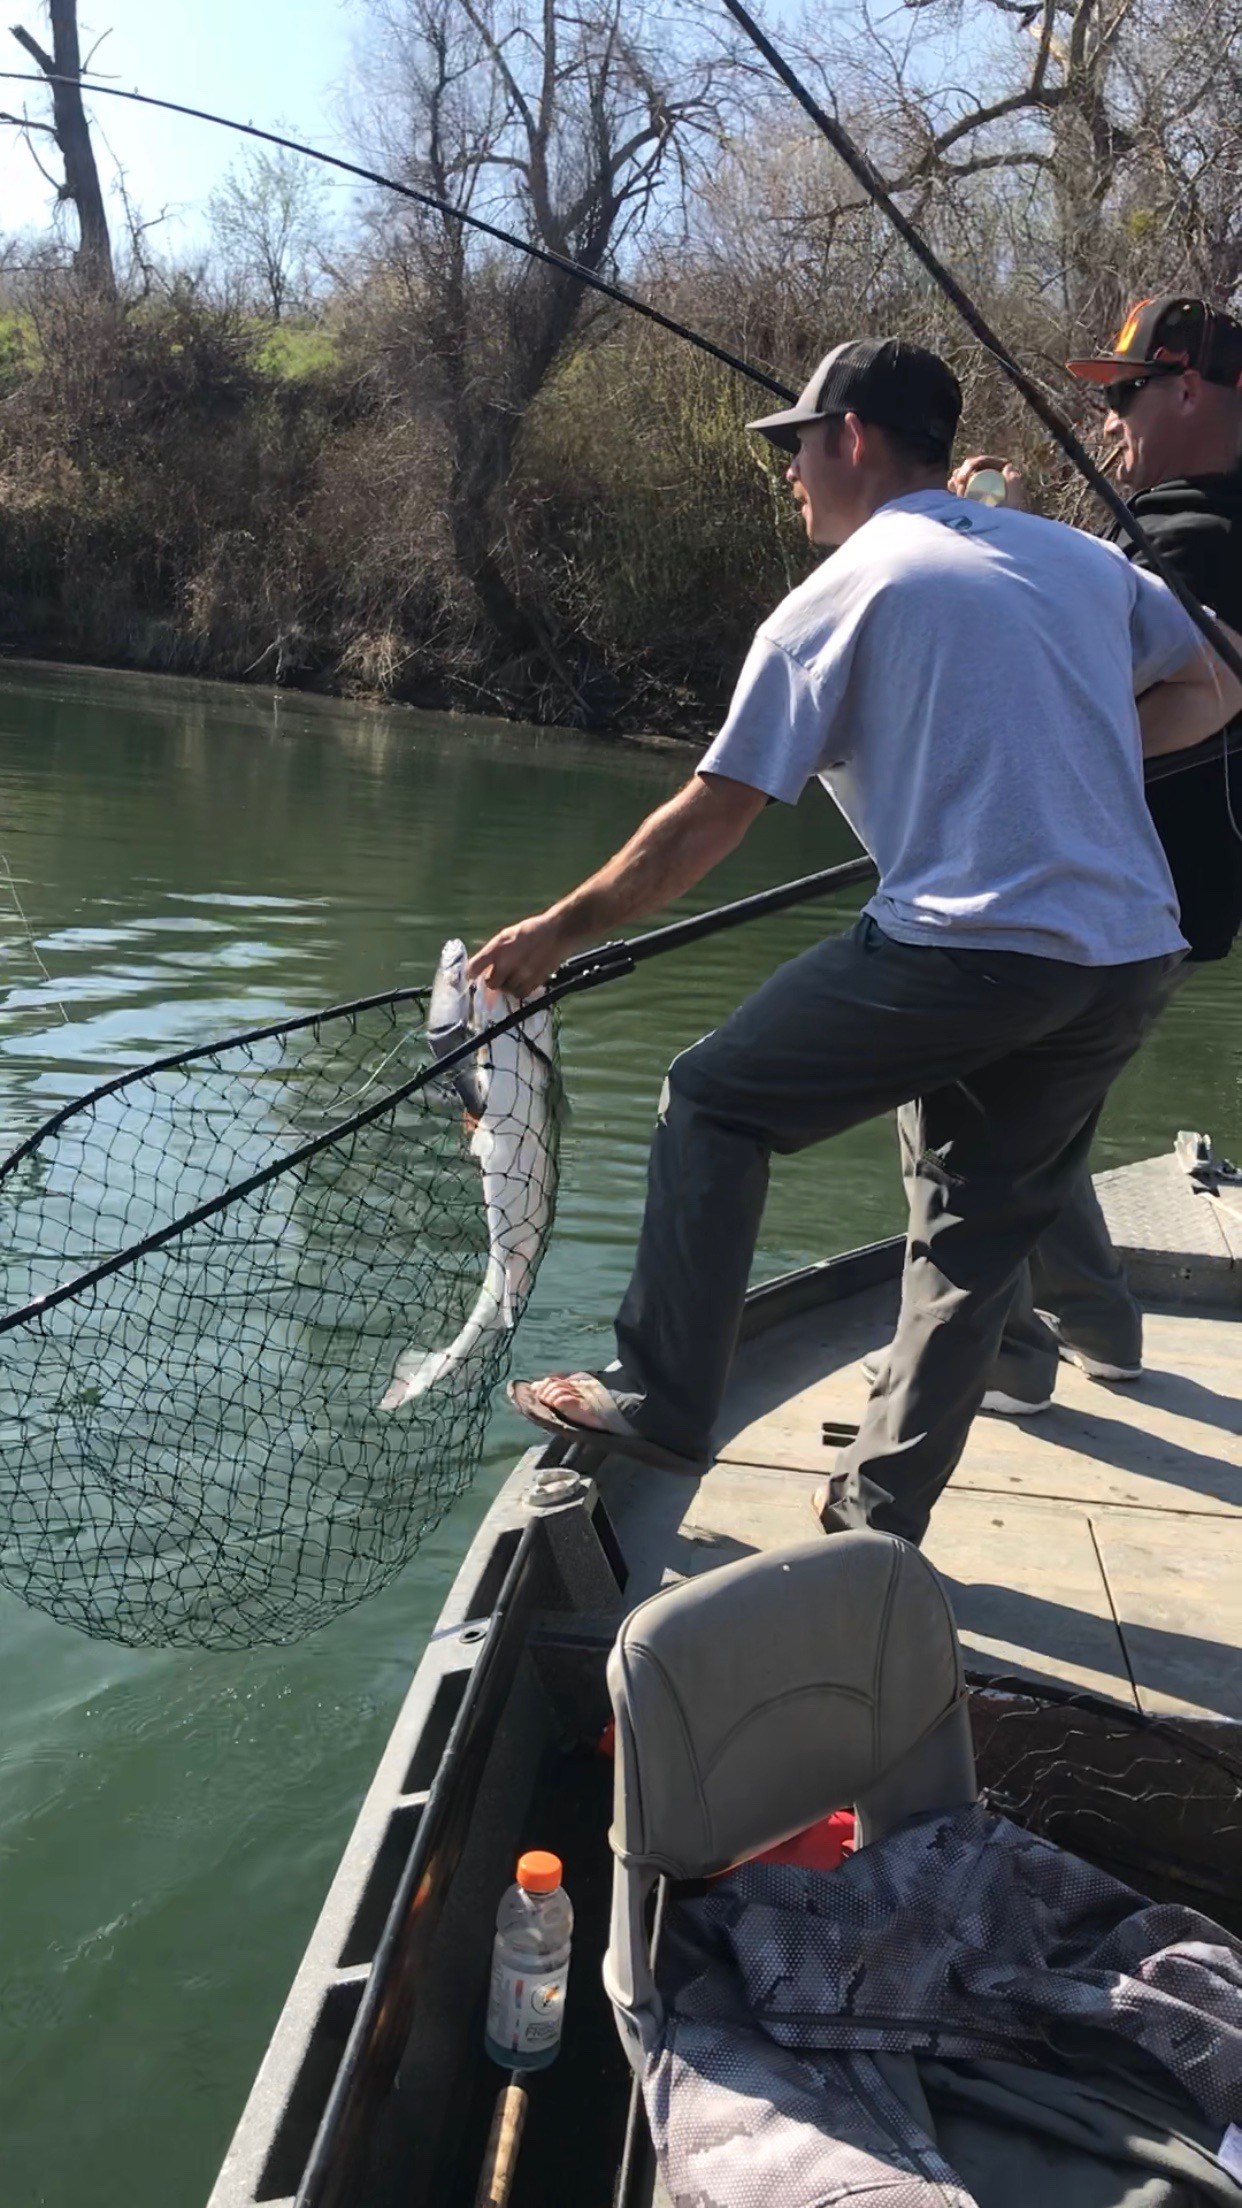 Fishing Guide John Pearl holds his end of a double header as he prepares to net a 44 pound striped bass friend and fishing partner Gary Collins has on his end of the double header. Both fish were landed bringing the total of stripers caught on their trip to four trophy striped bass.